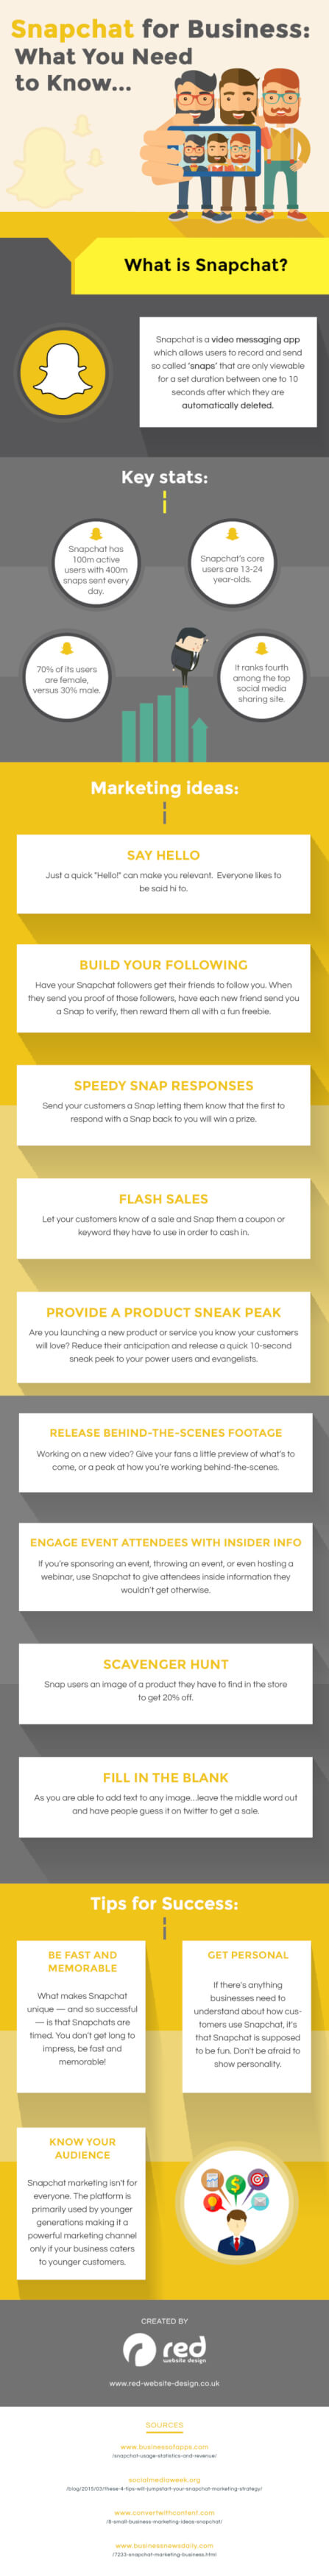 snapchat-marketing-for-business-what-you-need-to-know1